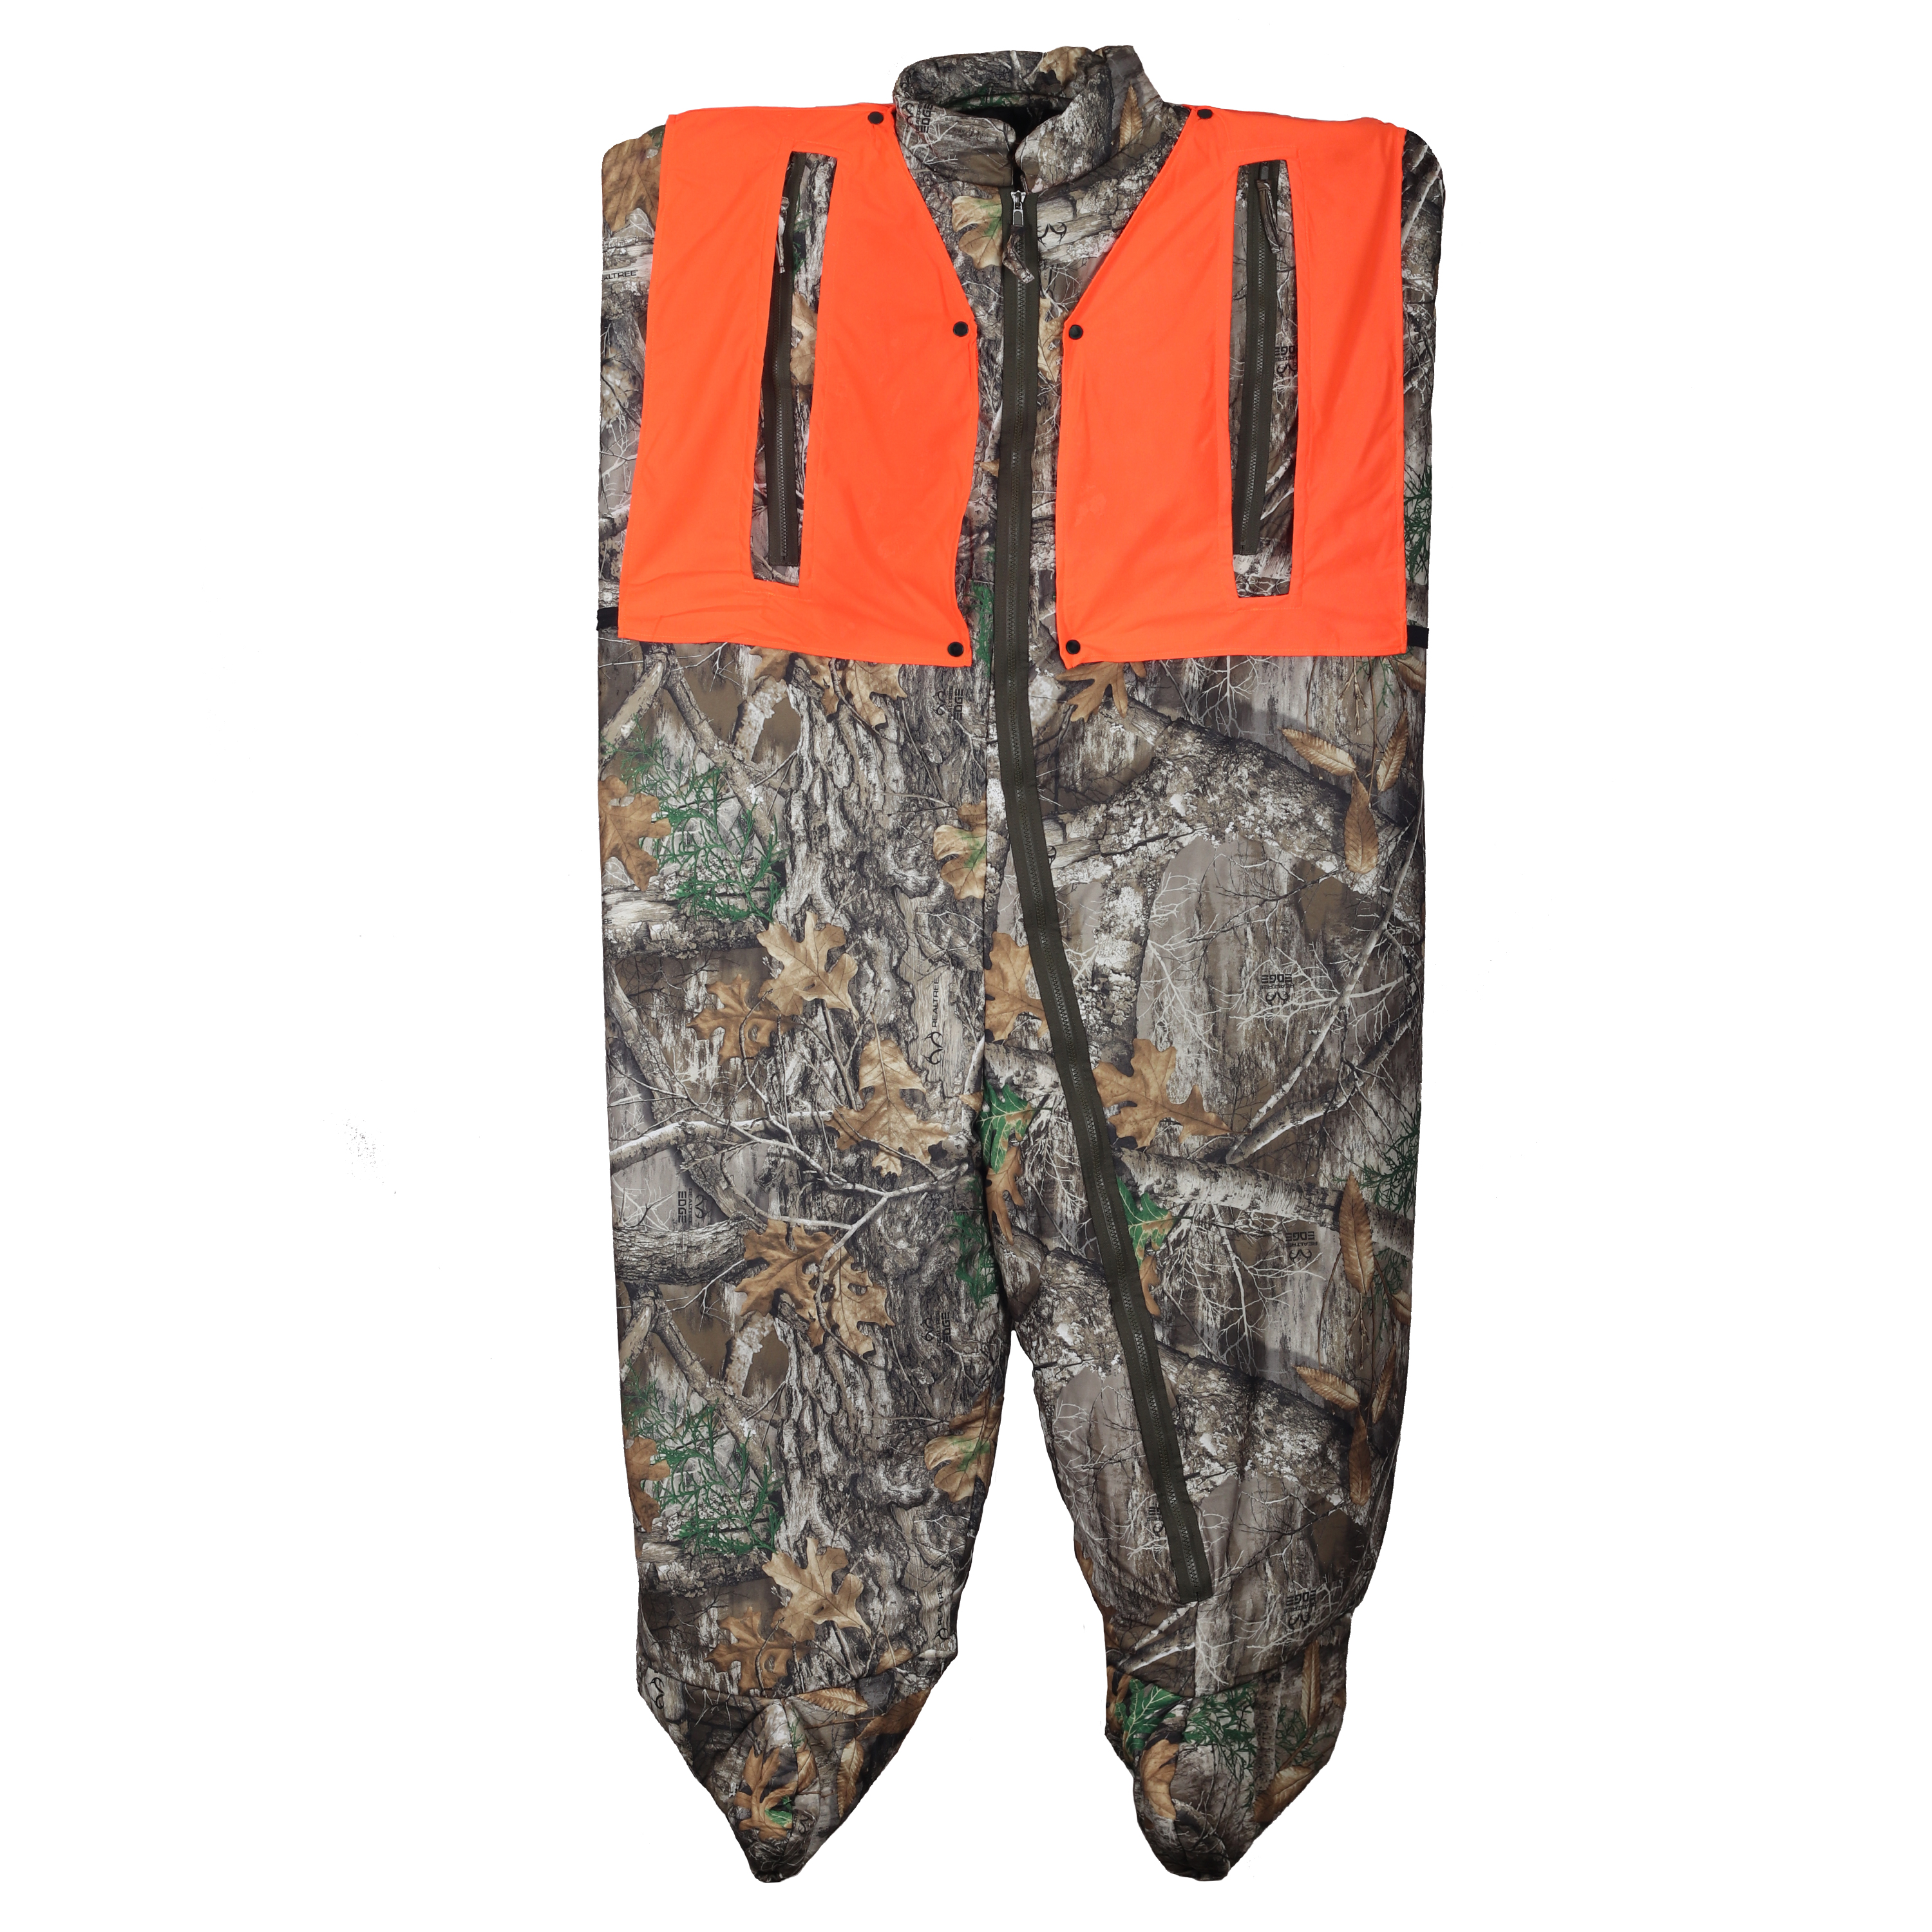 GameHide-FBS-No-Chill-Body-Suit-Realtree-Edge-WITH-ORANGE-hunting-big-tall-BigCamo